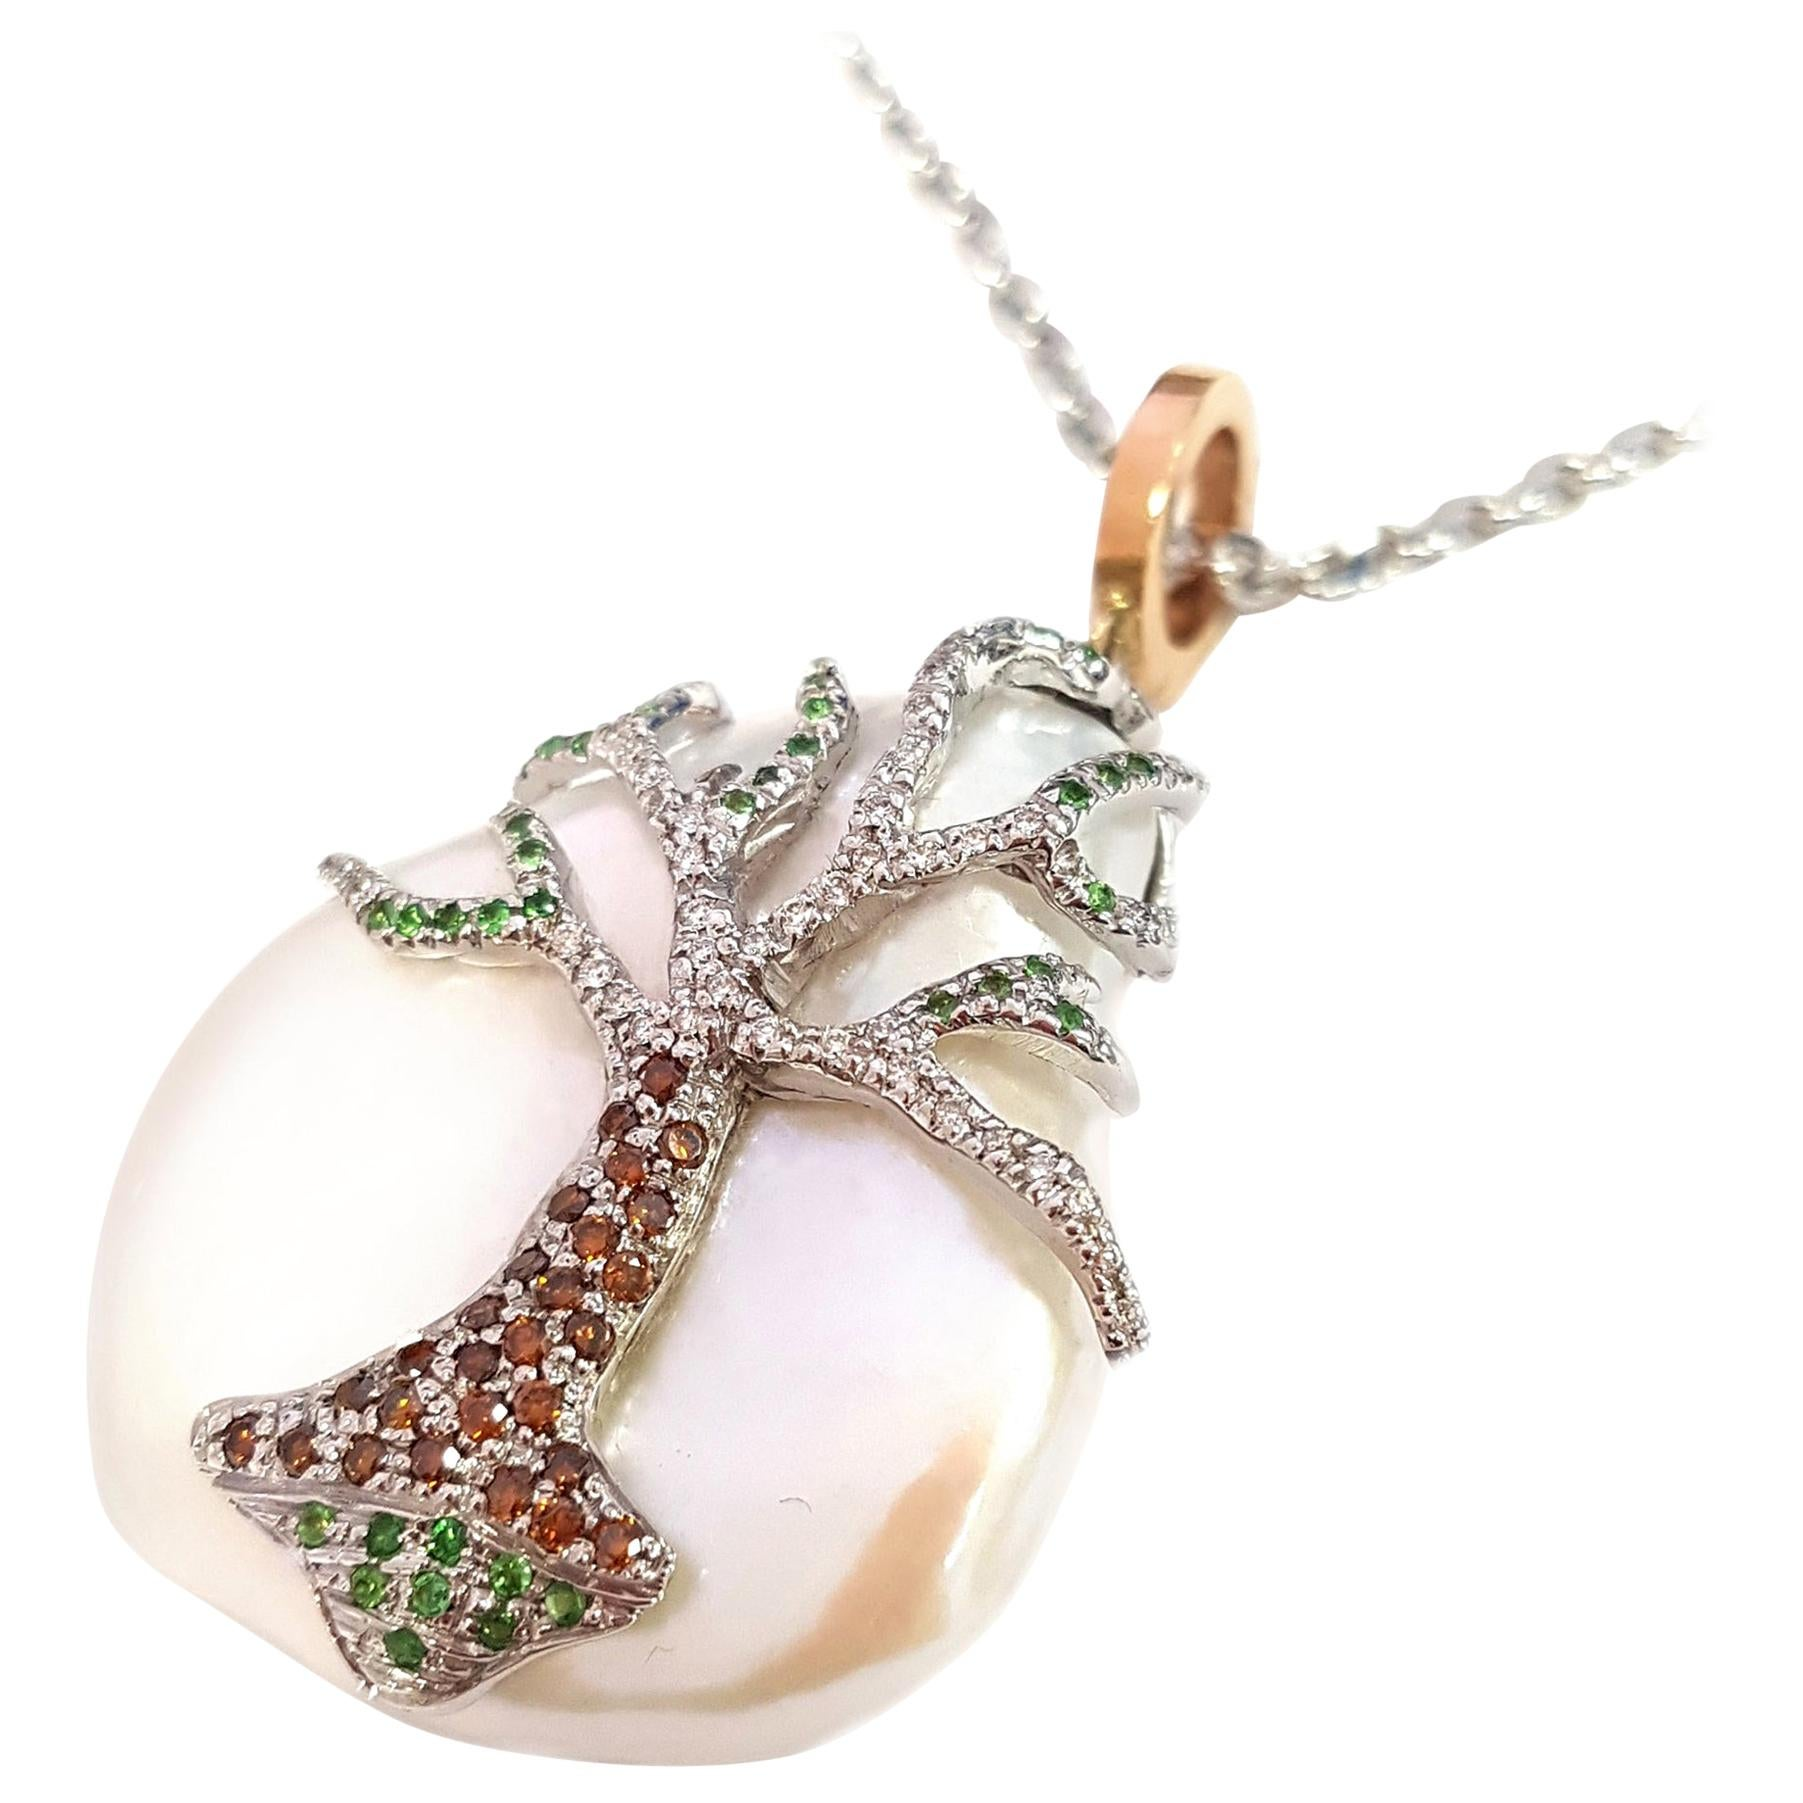 Pearl with Diamonds and Tsavorites in 18 Karat Gold Necklace